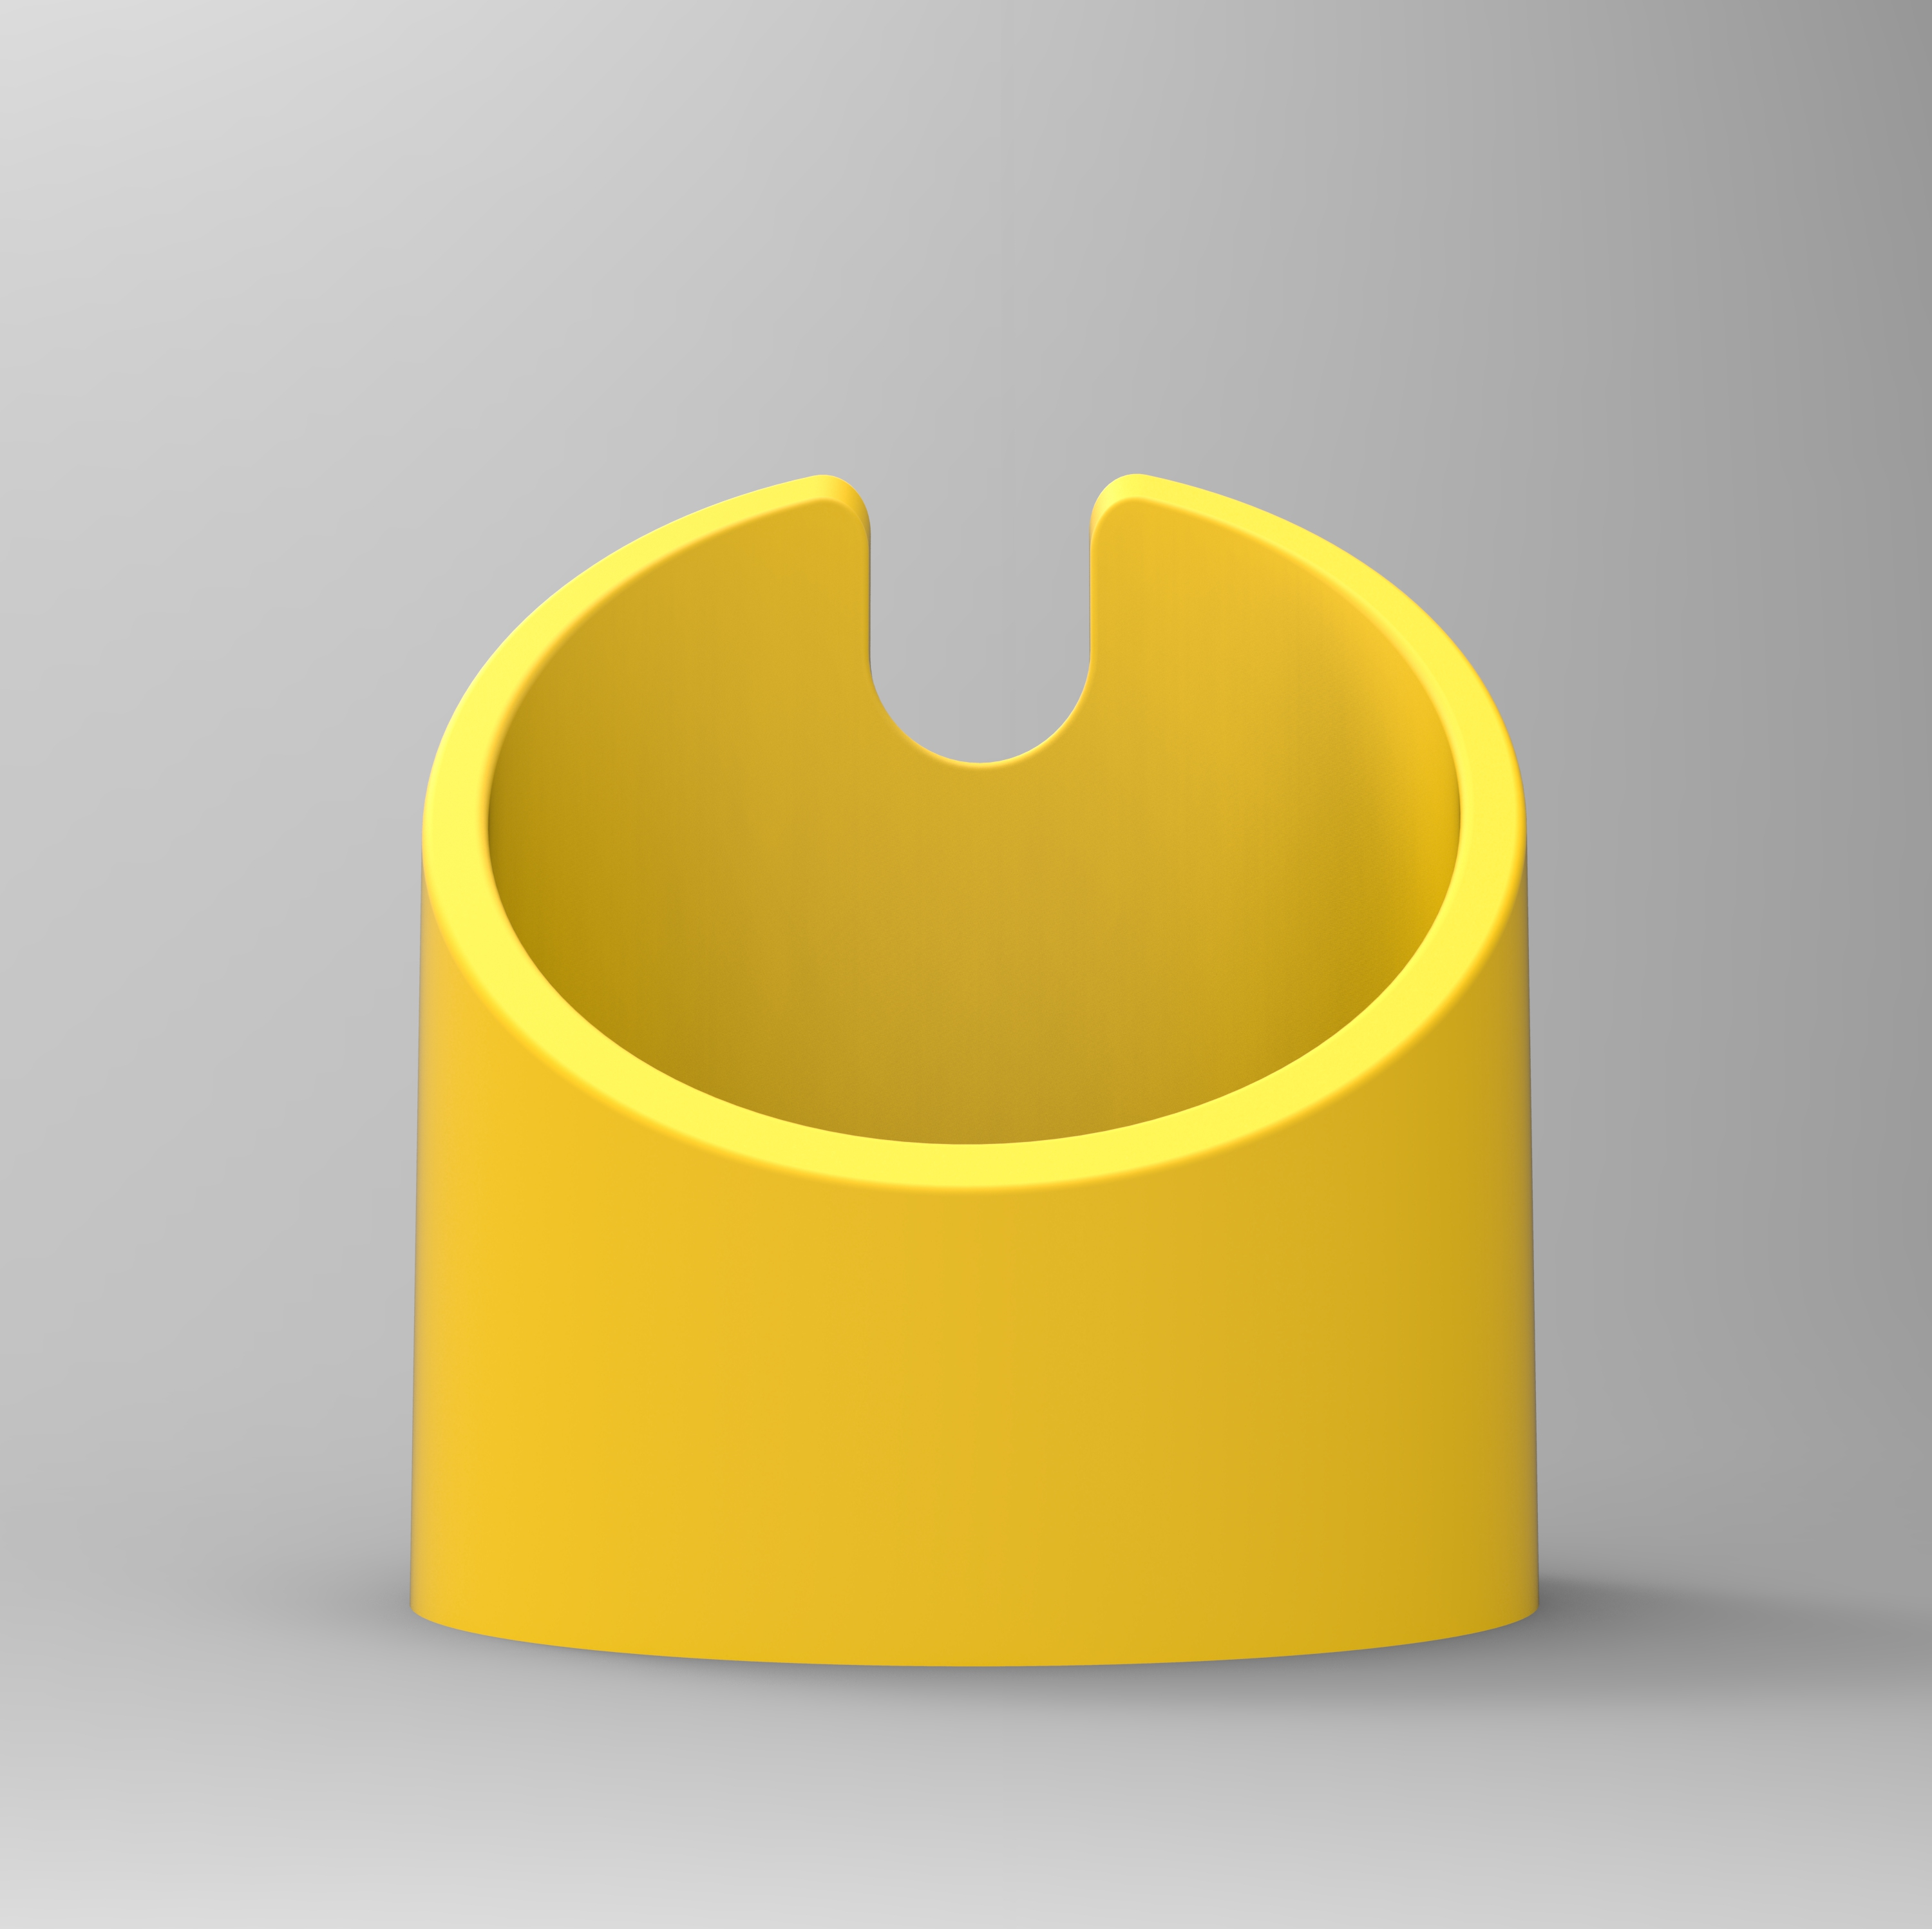 3.png Download free STL file SUPPORT & SPOON REST • Model to 3D print, GuilhemPerroud